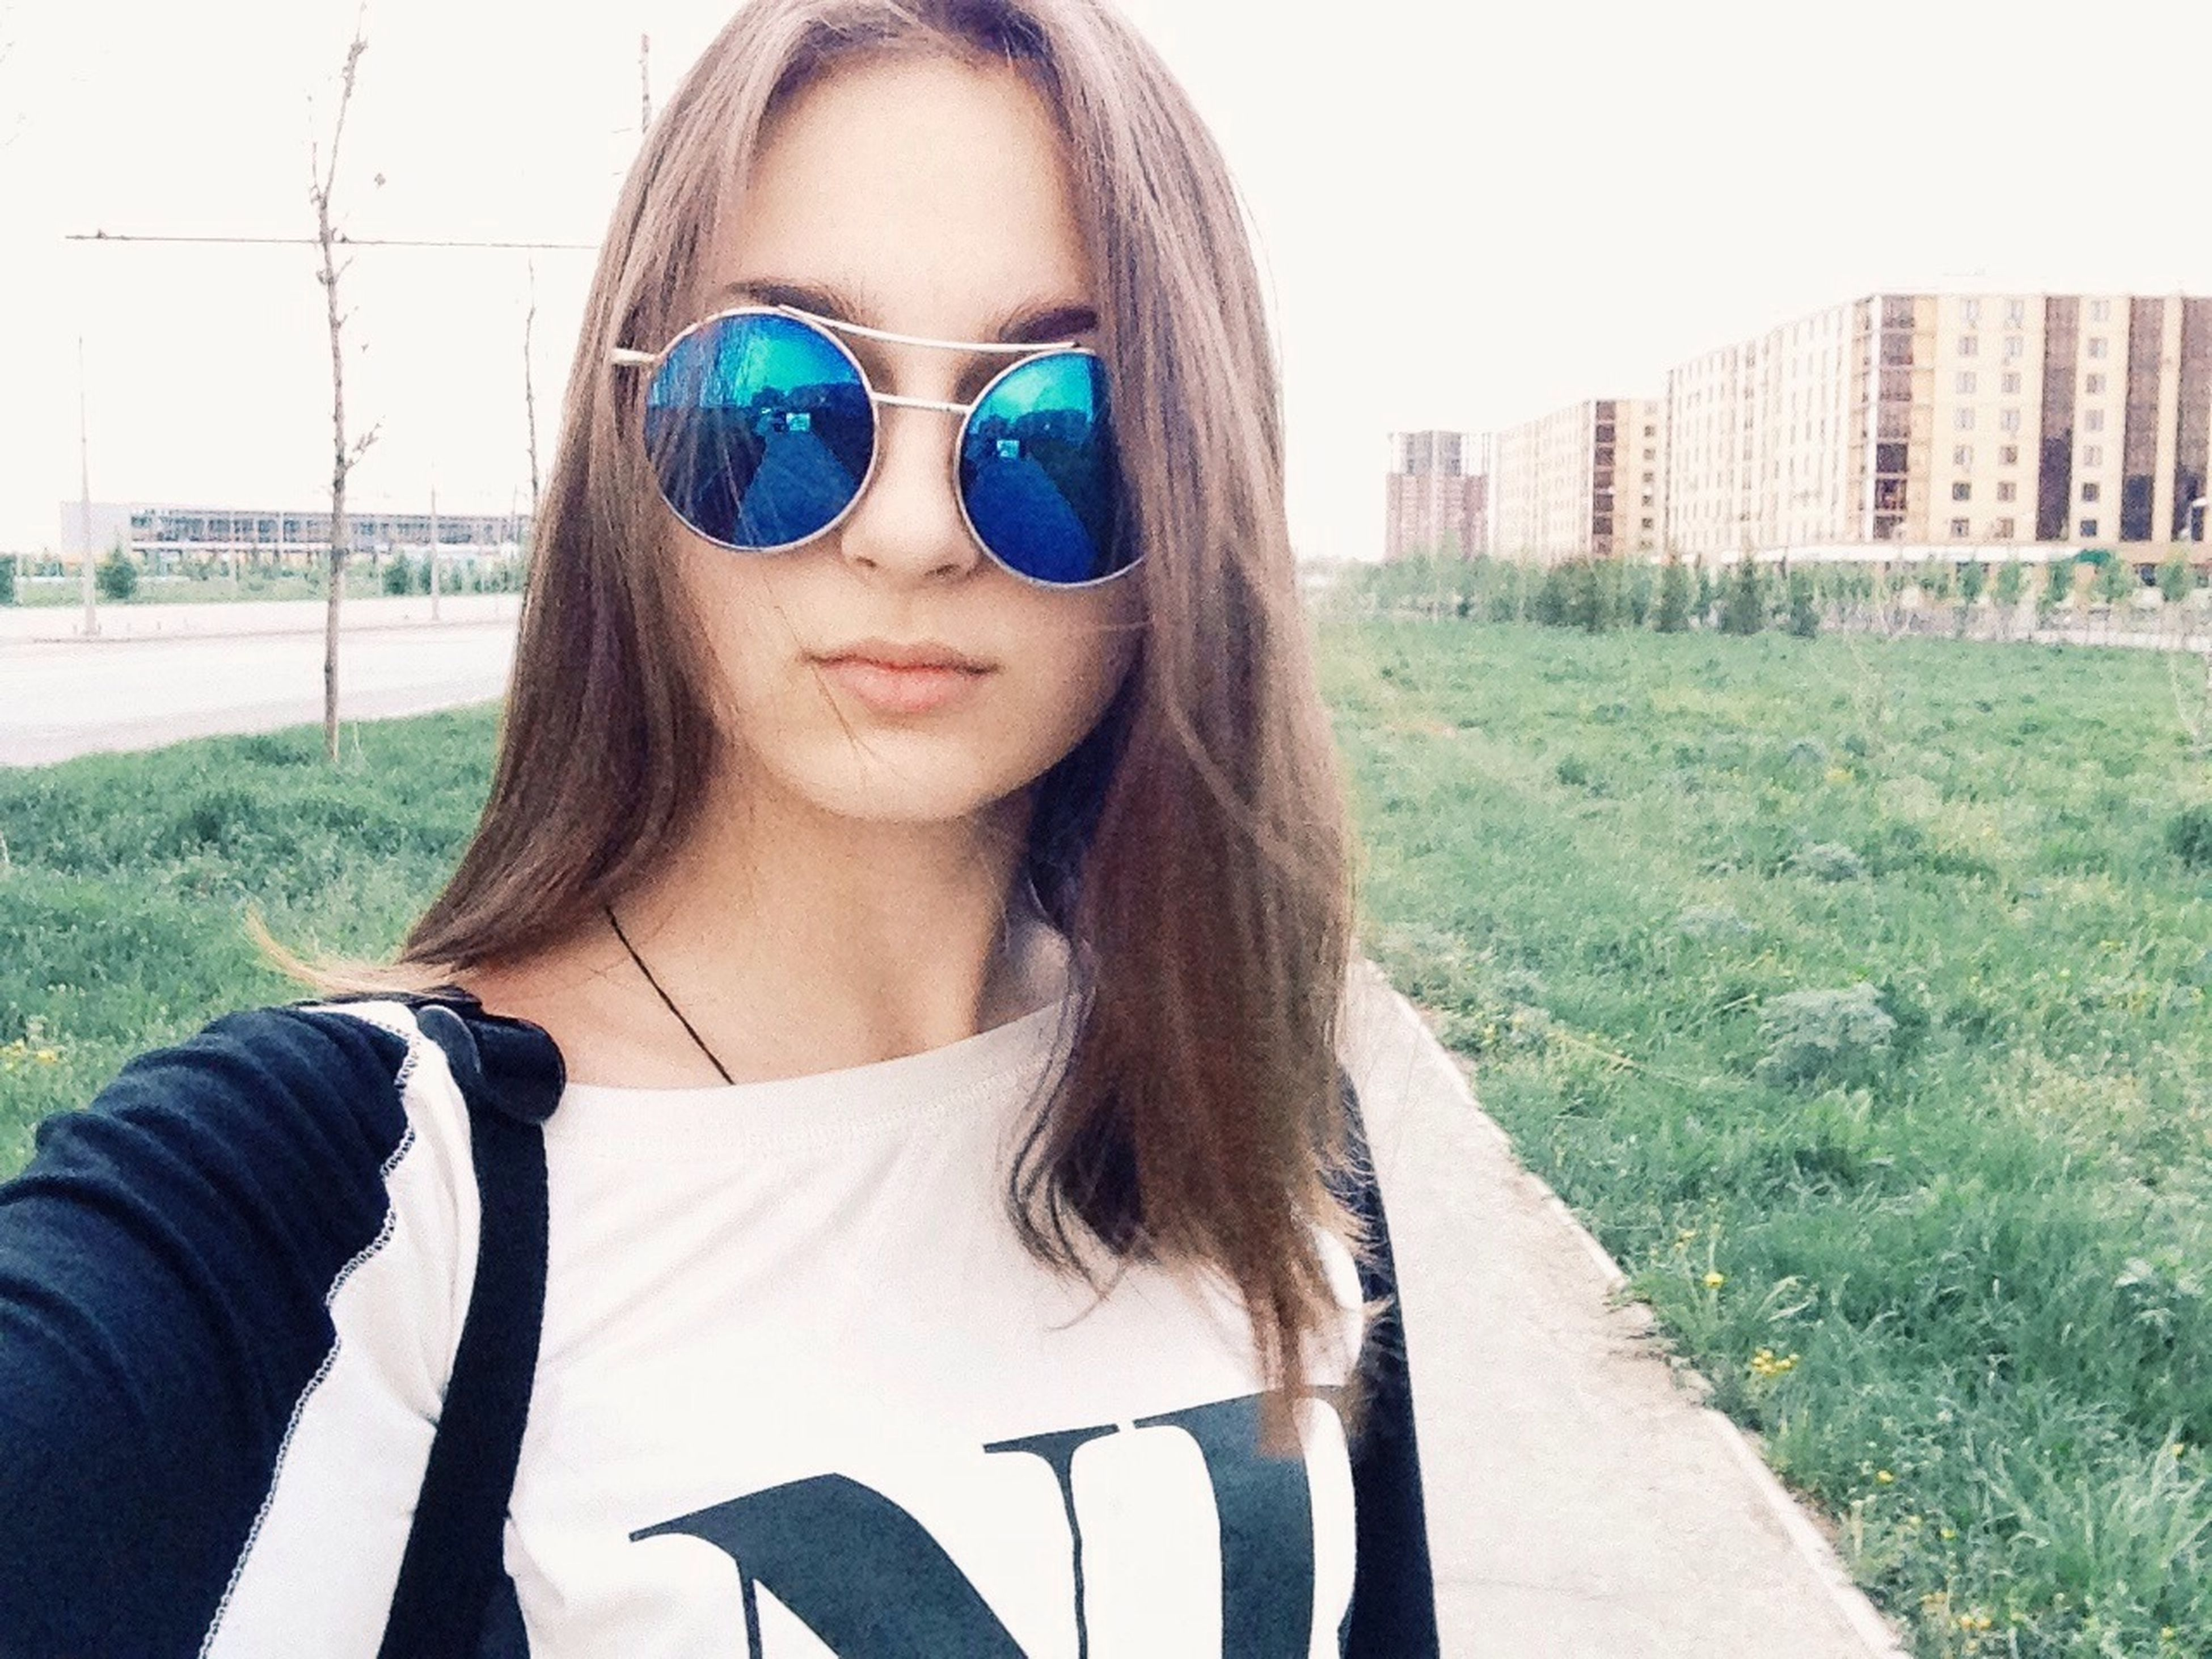 portrait, young adult, looking at camera, person, sunglasses, young women, front view, lifestyles, headshot, leisure activity, long hair, smiling, close-up, head and shoulders, casual clothing, sunlight, day